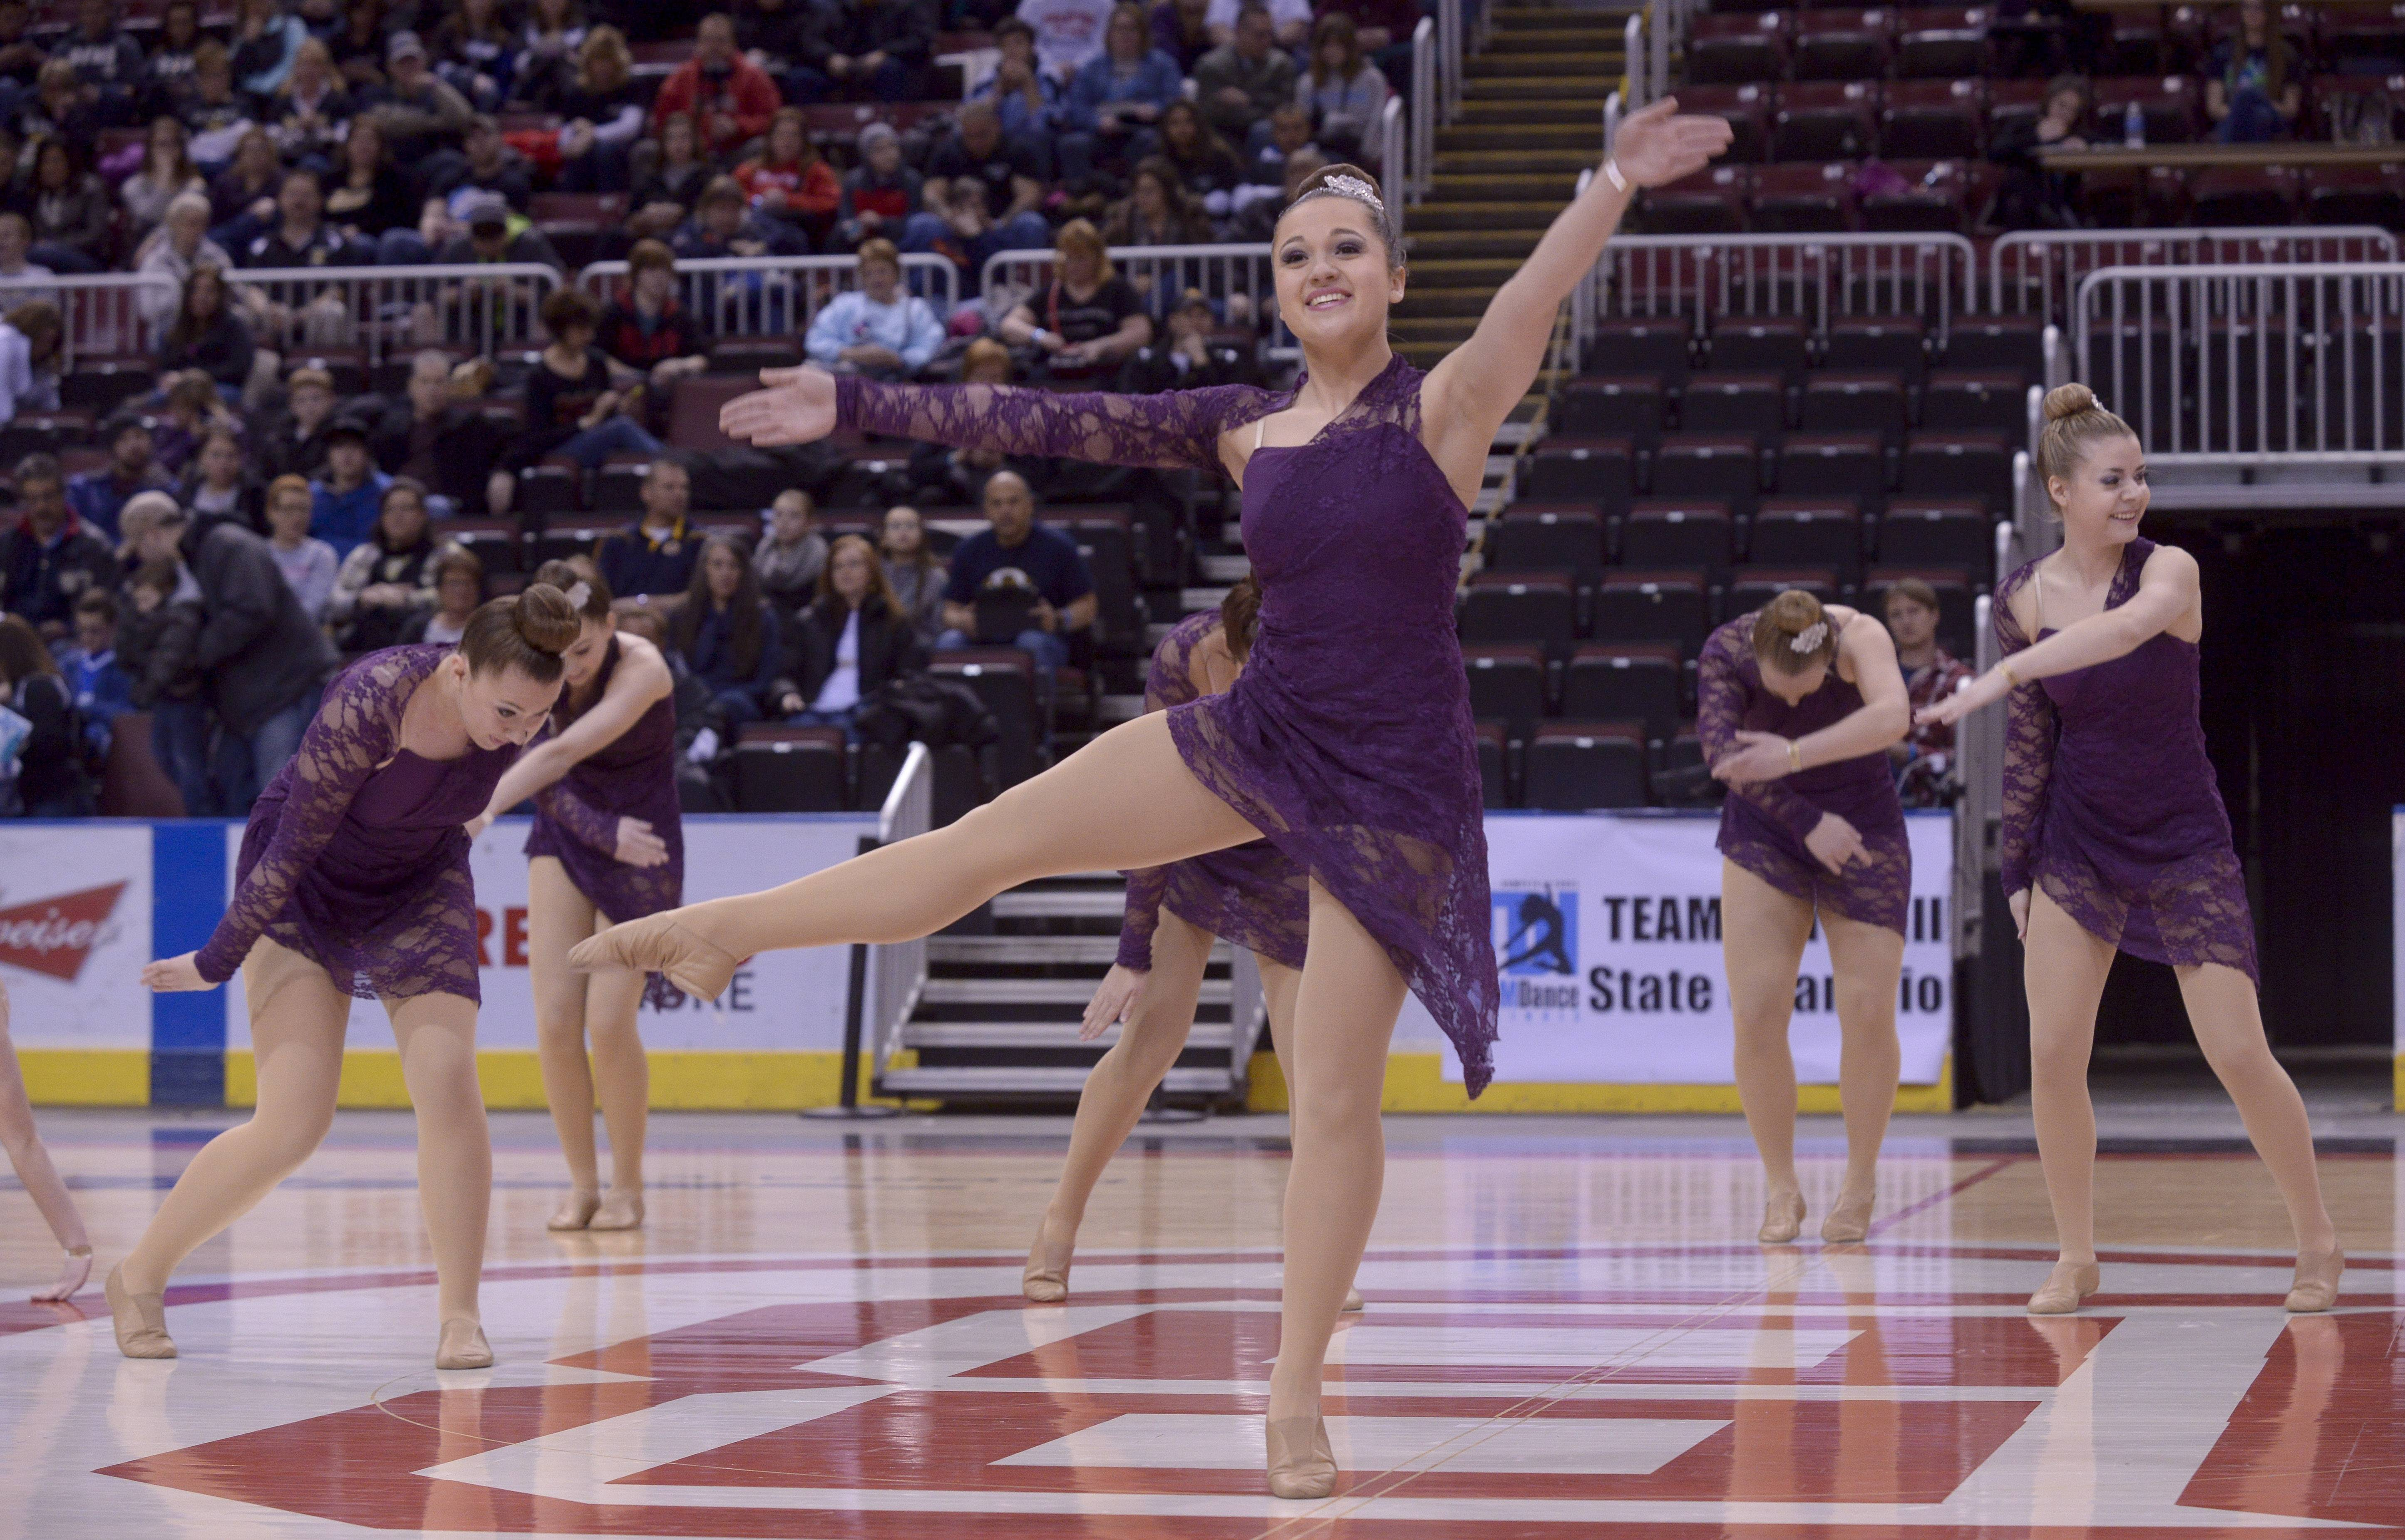 Bartlett High School performs in the 3A Open Dance category during the TEAMDance Illinois 2014 Grand Championship in Peoria, Sunday March 2nd.